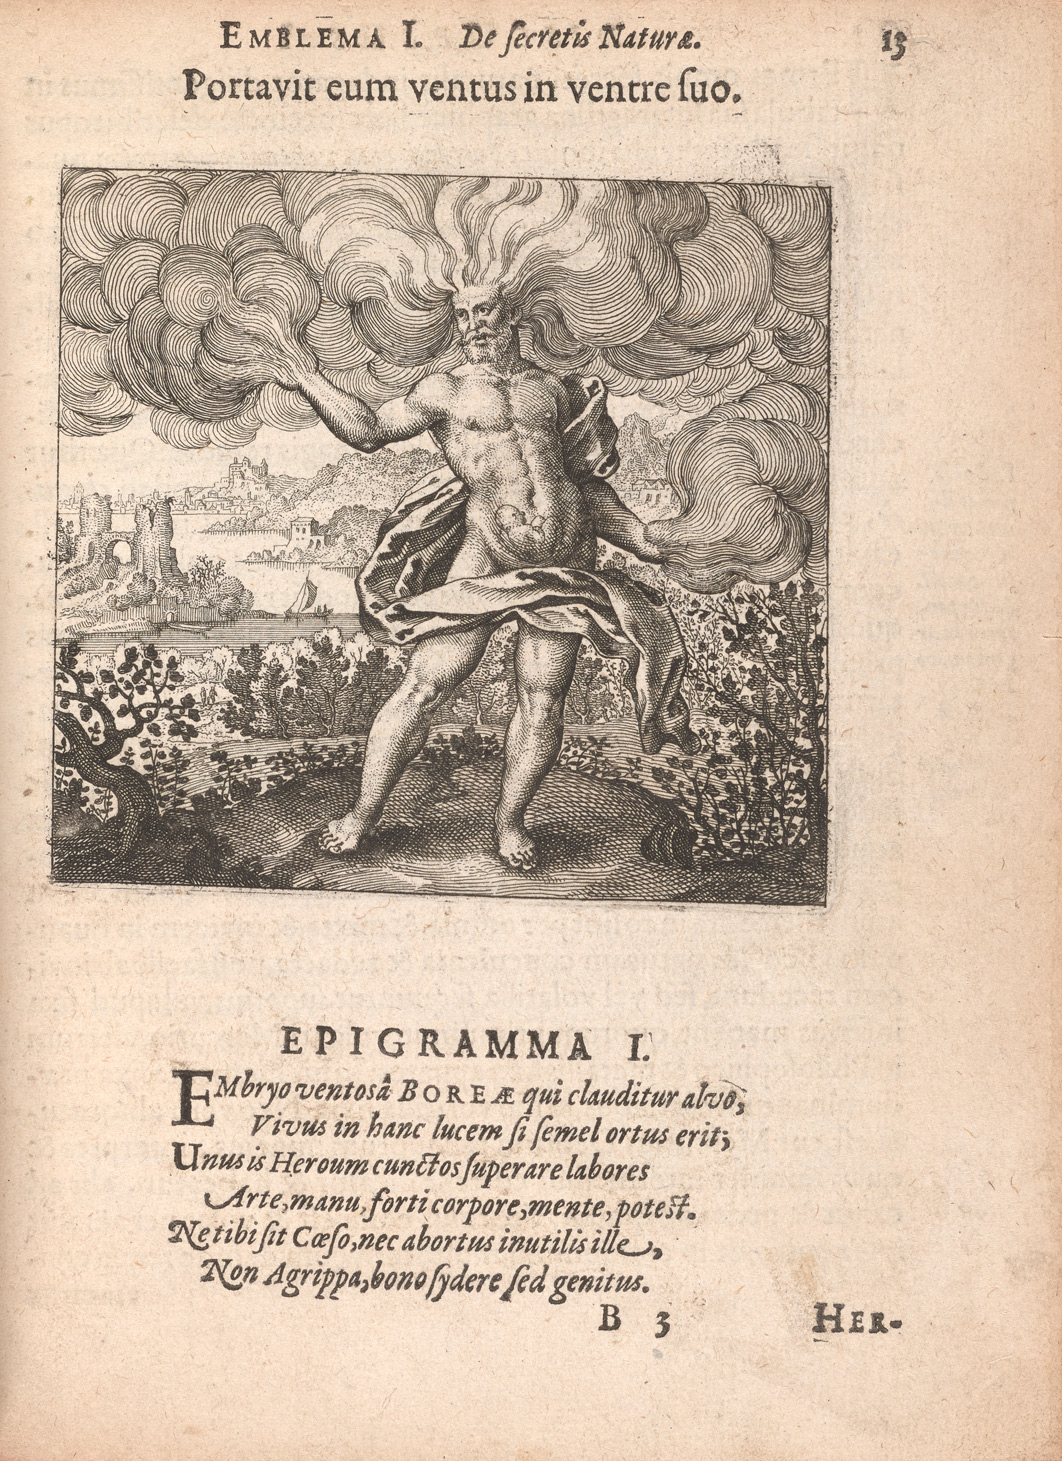 A page from Atalanta fugiens presents Emblem 1 and its epigram. In the emblem, a bearded nude man, identified as Boreas, with wind gusts extending from his head and arms, has a fetus inside his stomach. He is standing amongst bushes with a river and cityscape in the background.